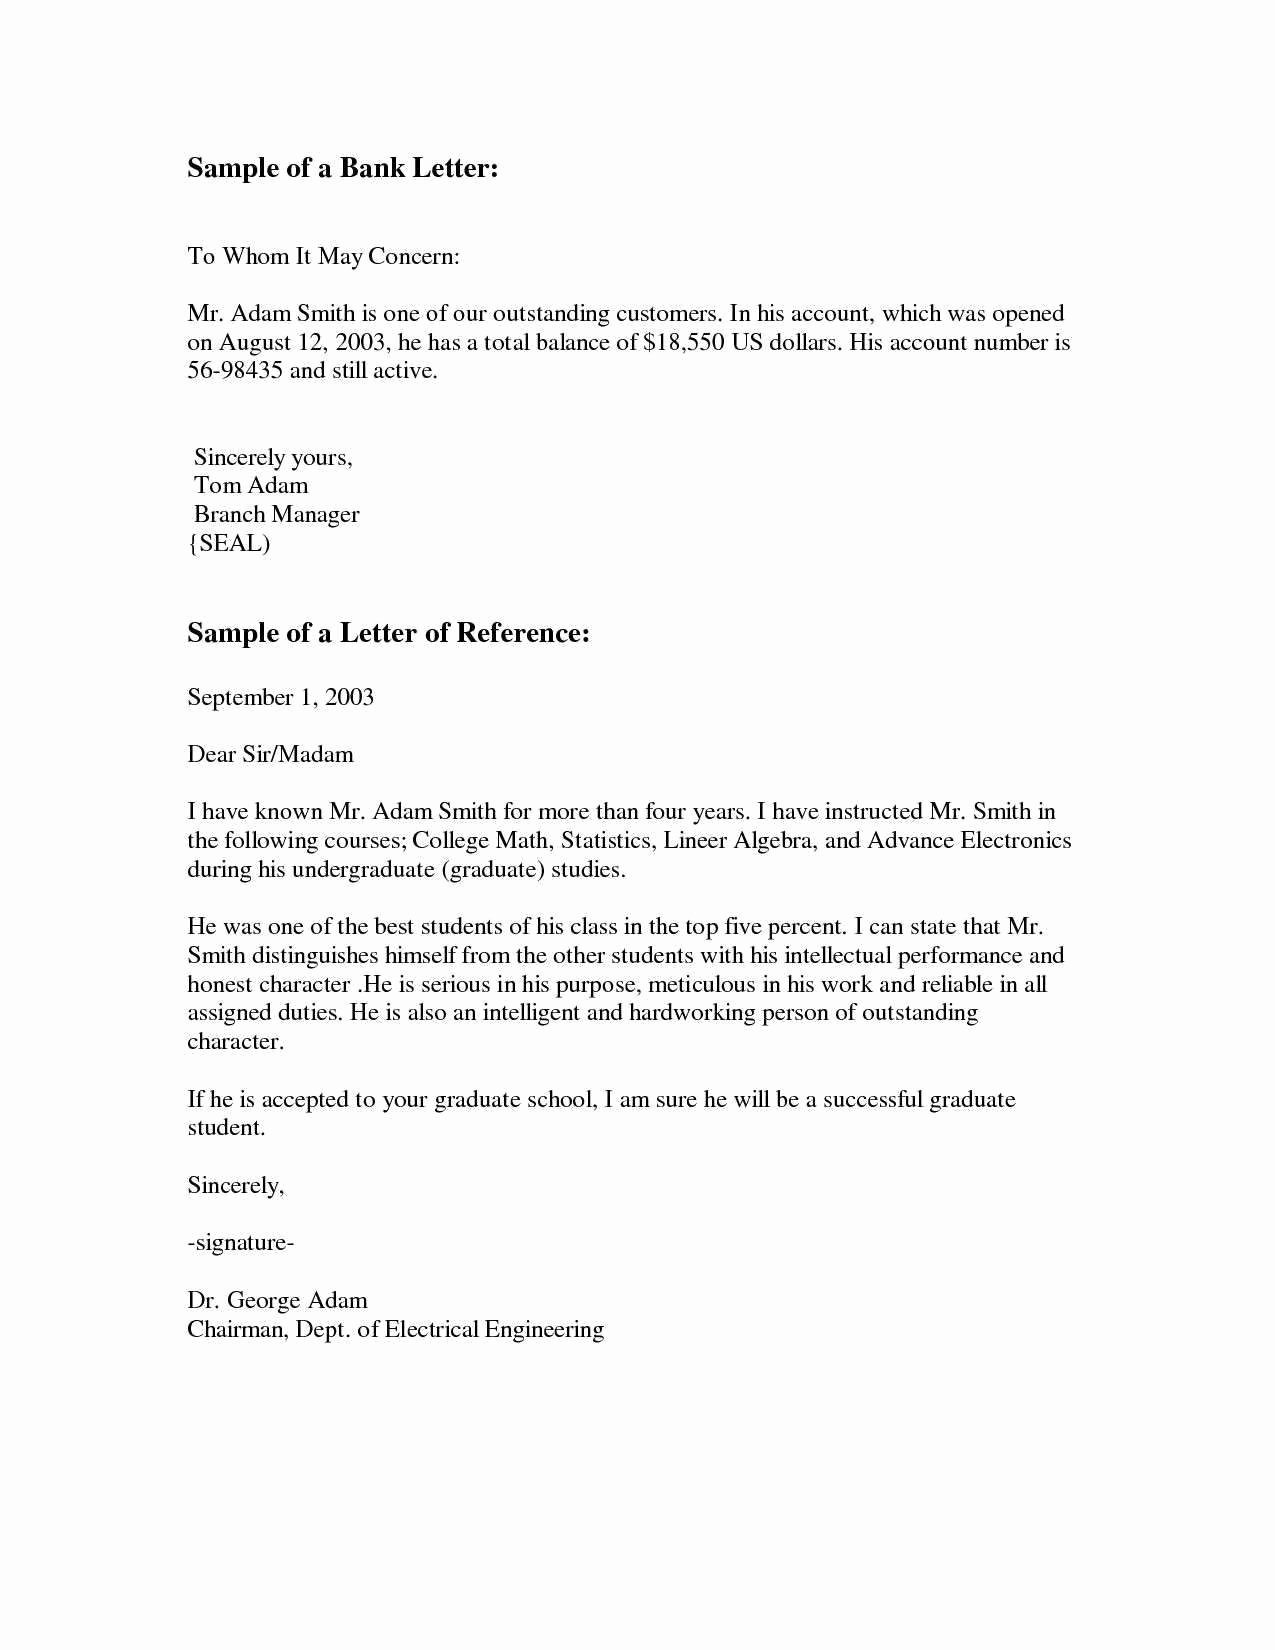 Business School Recommendation Letter Sample Elegant New Re Mendation Letter Template Business School